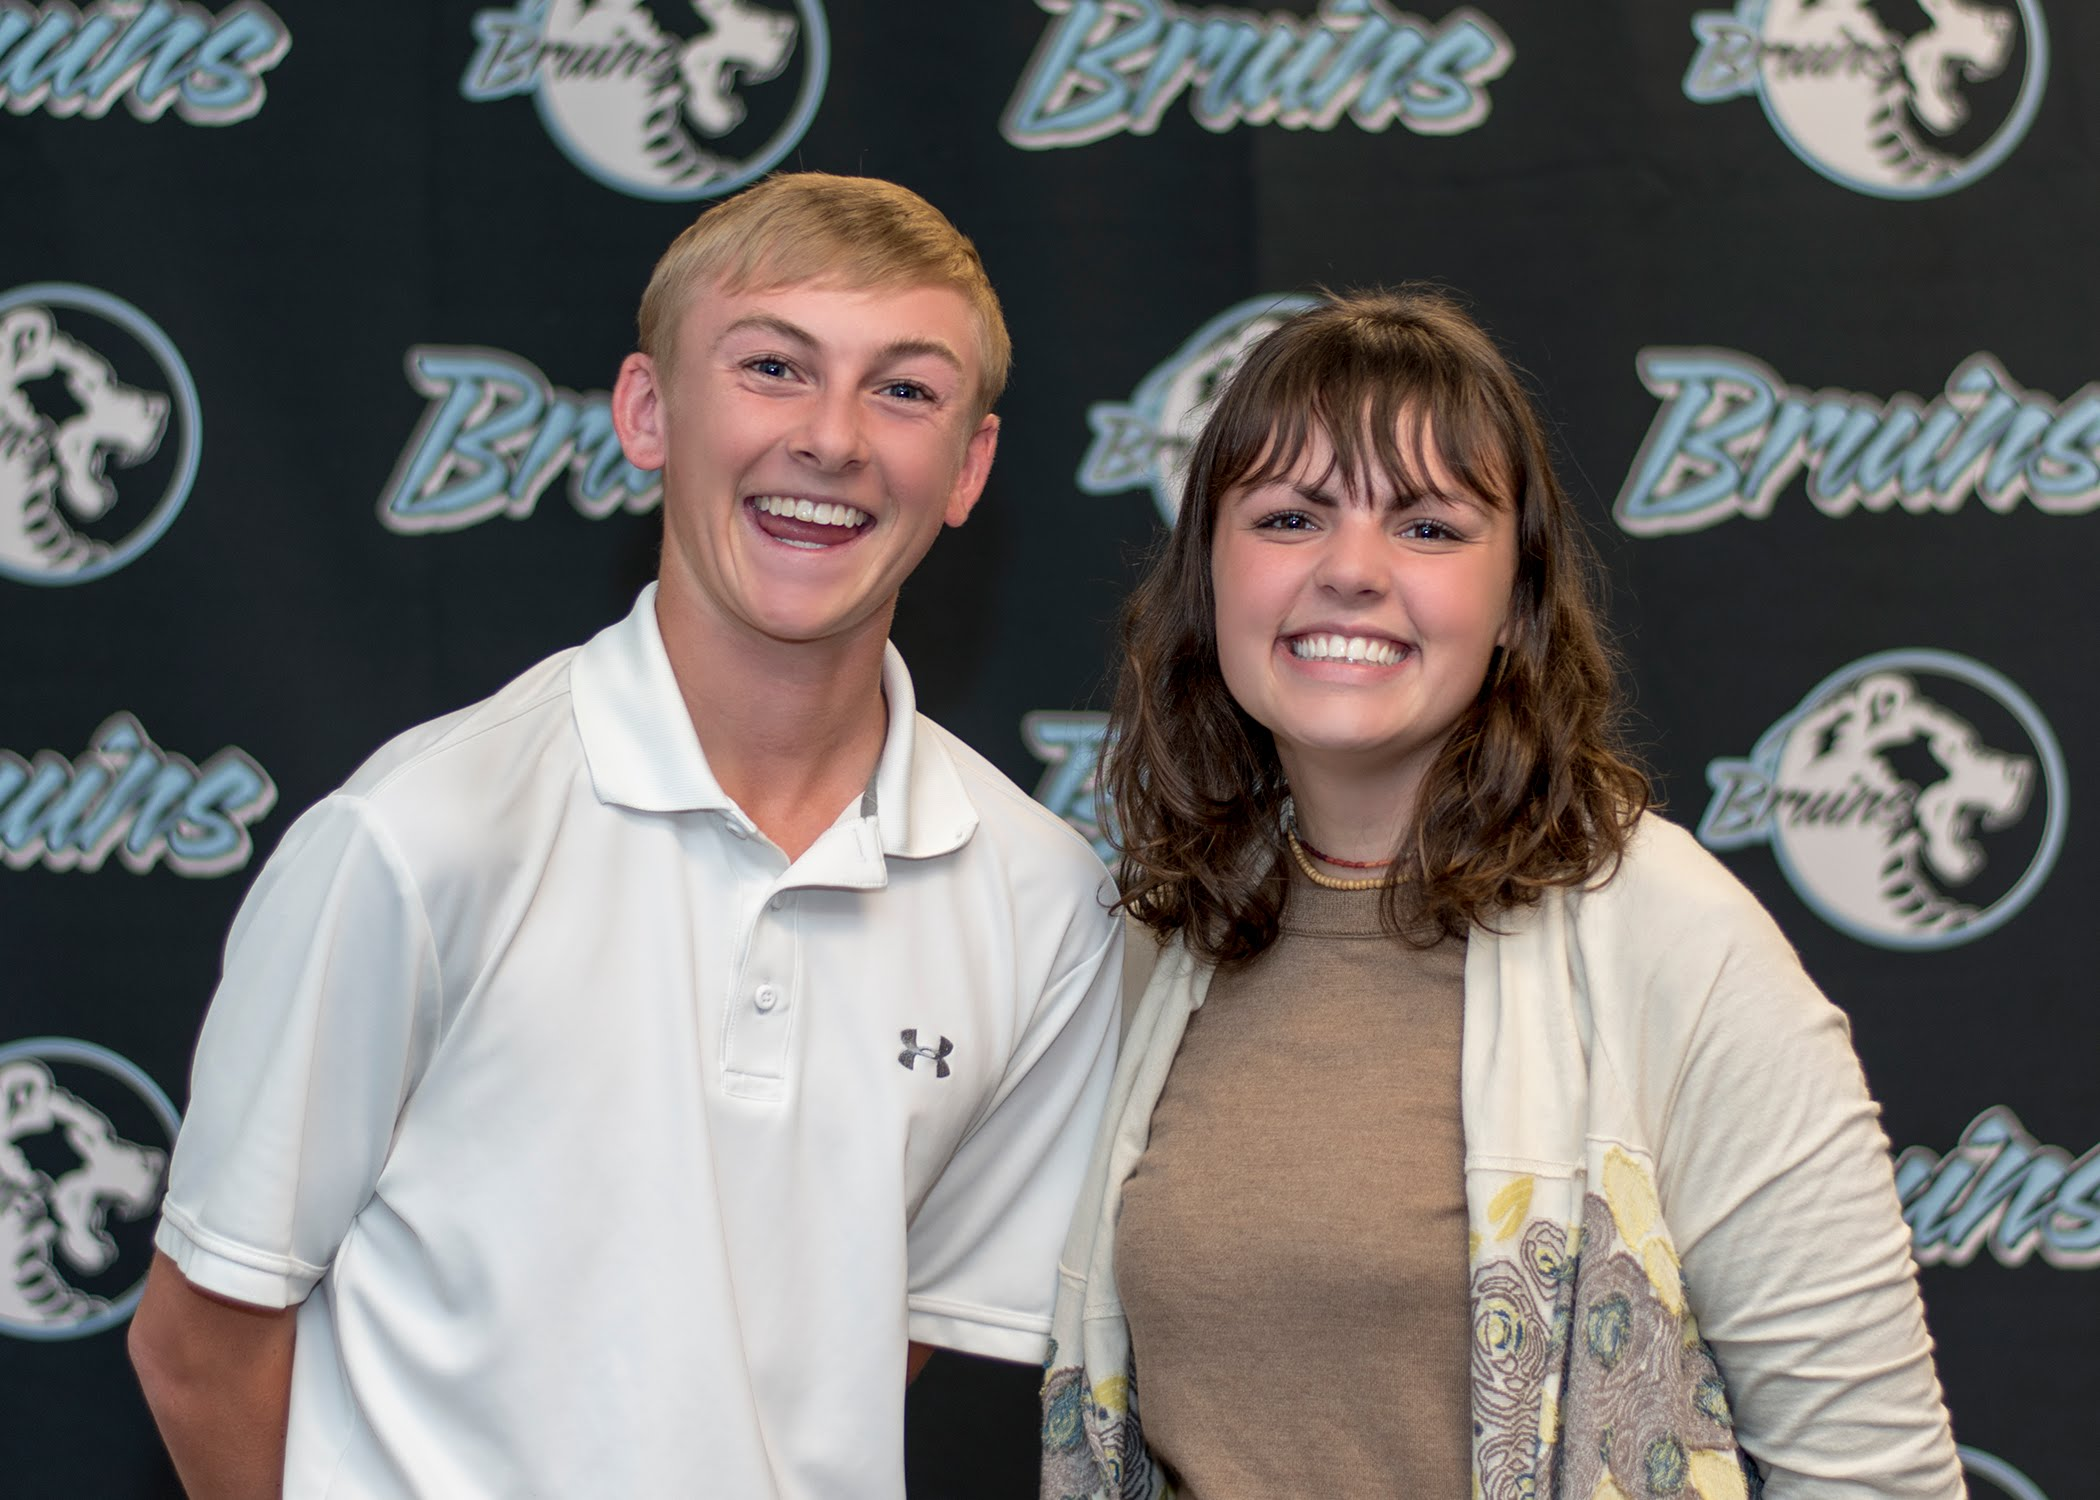 Matt Russell (Senior), Hannah Aldrich (Senior) Principal's Students of the Month for September